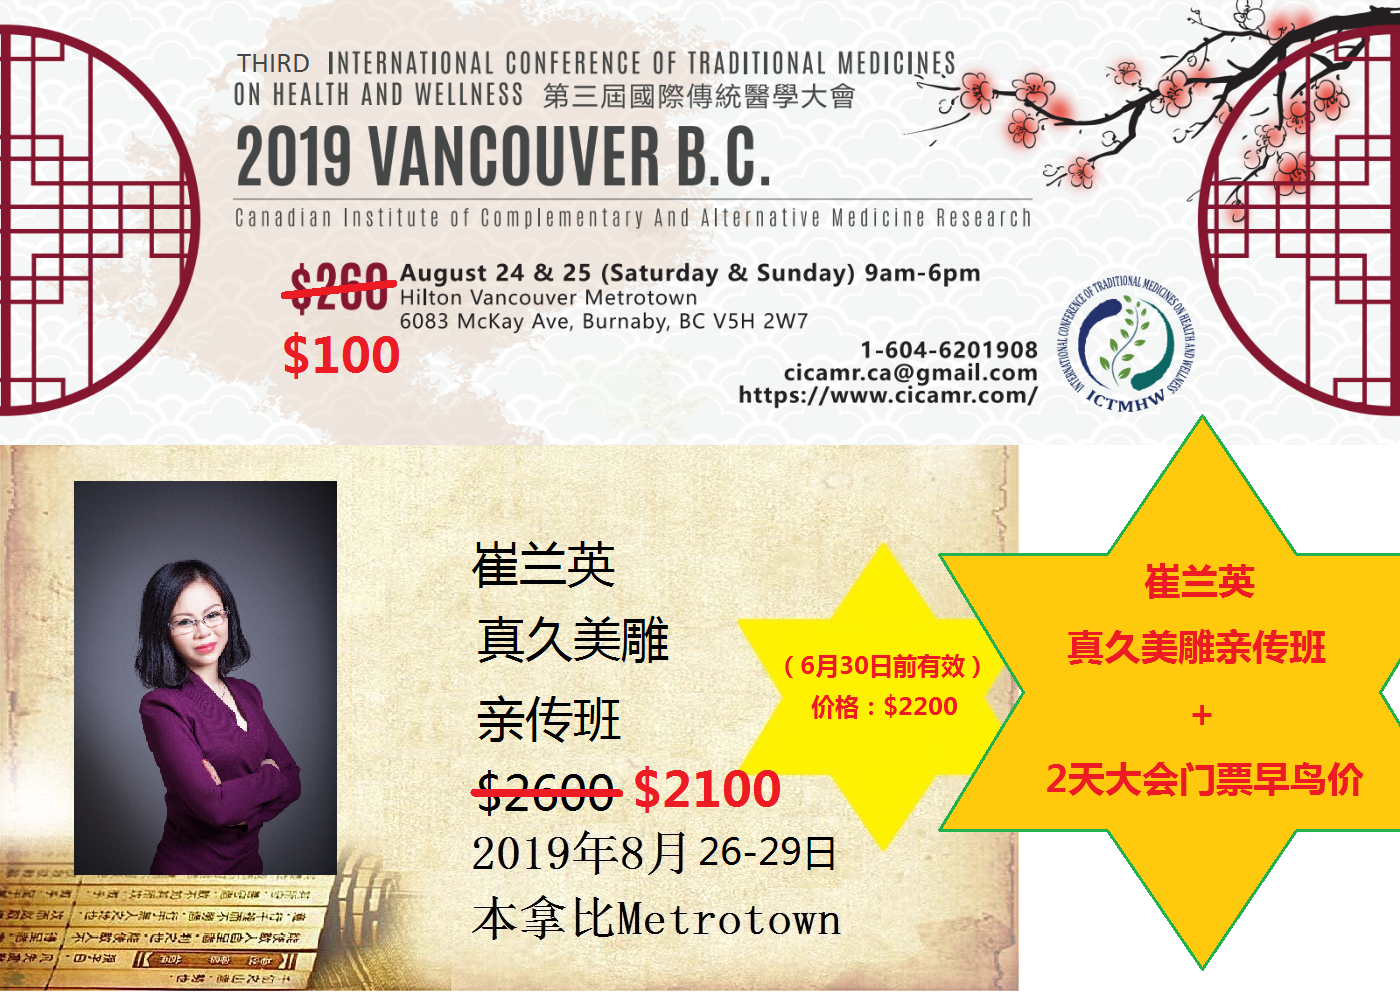 Cui Lanying Zhen Jiumei Course + 2 days conference ticket early bird price  (valid before June 30)